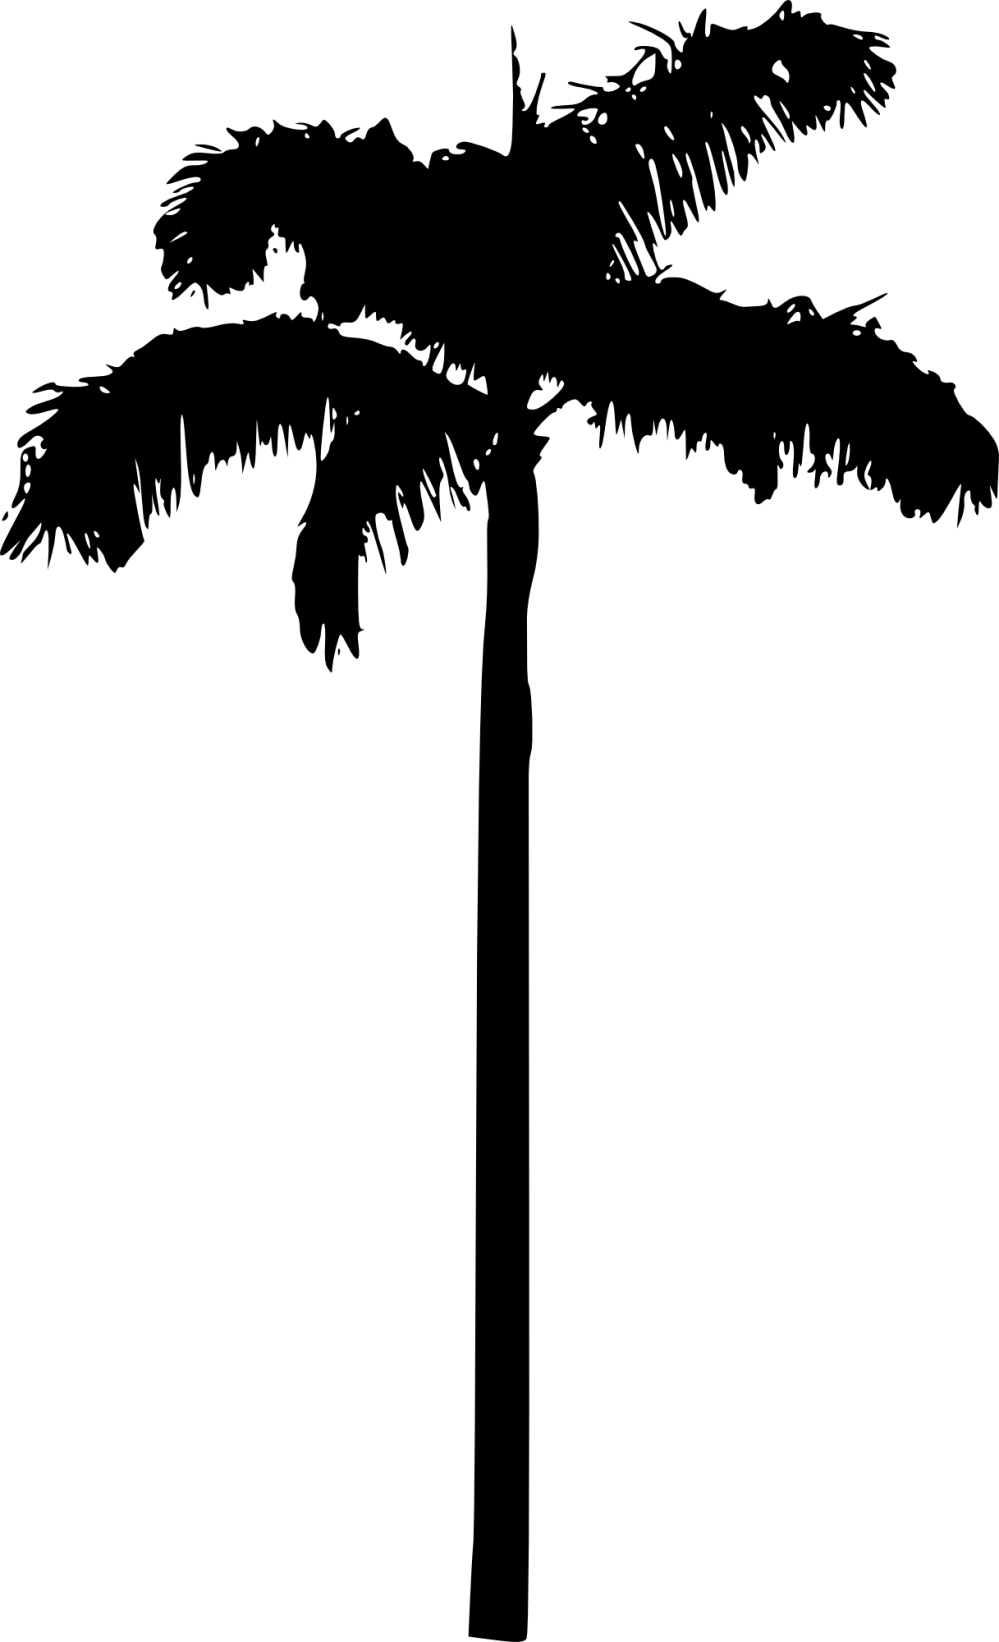 medium resolution of 100 free clipart palm tree silhouette free images at clker com